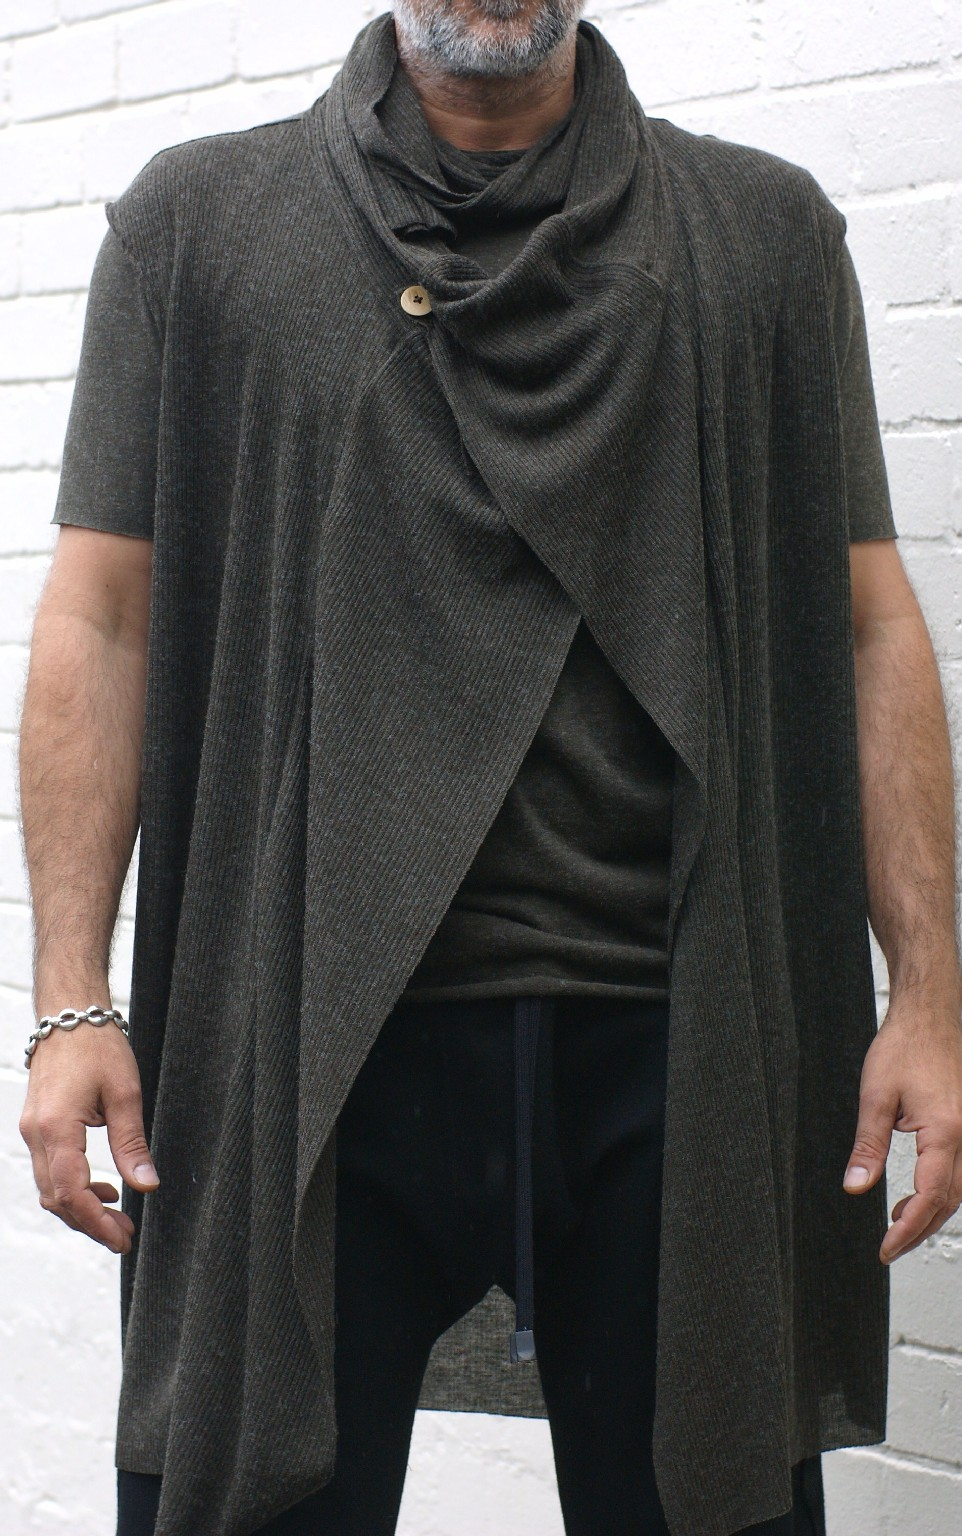 T Shirt And Sleeveless Drape Cardigan Sewing Projects